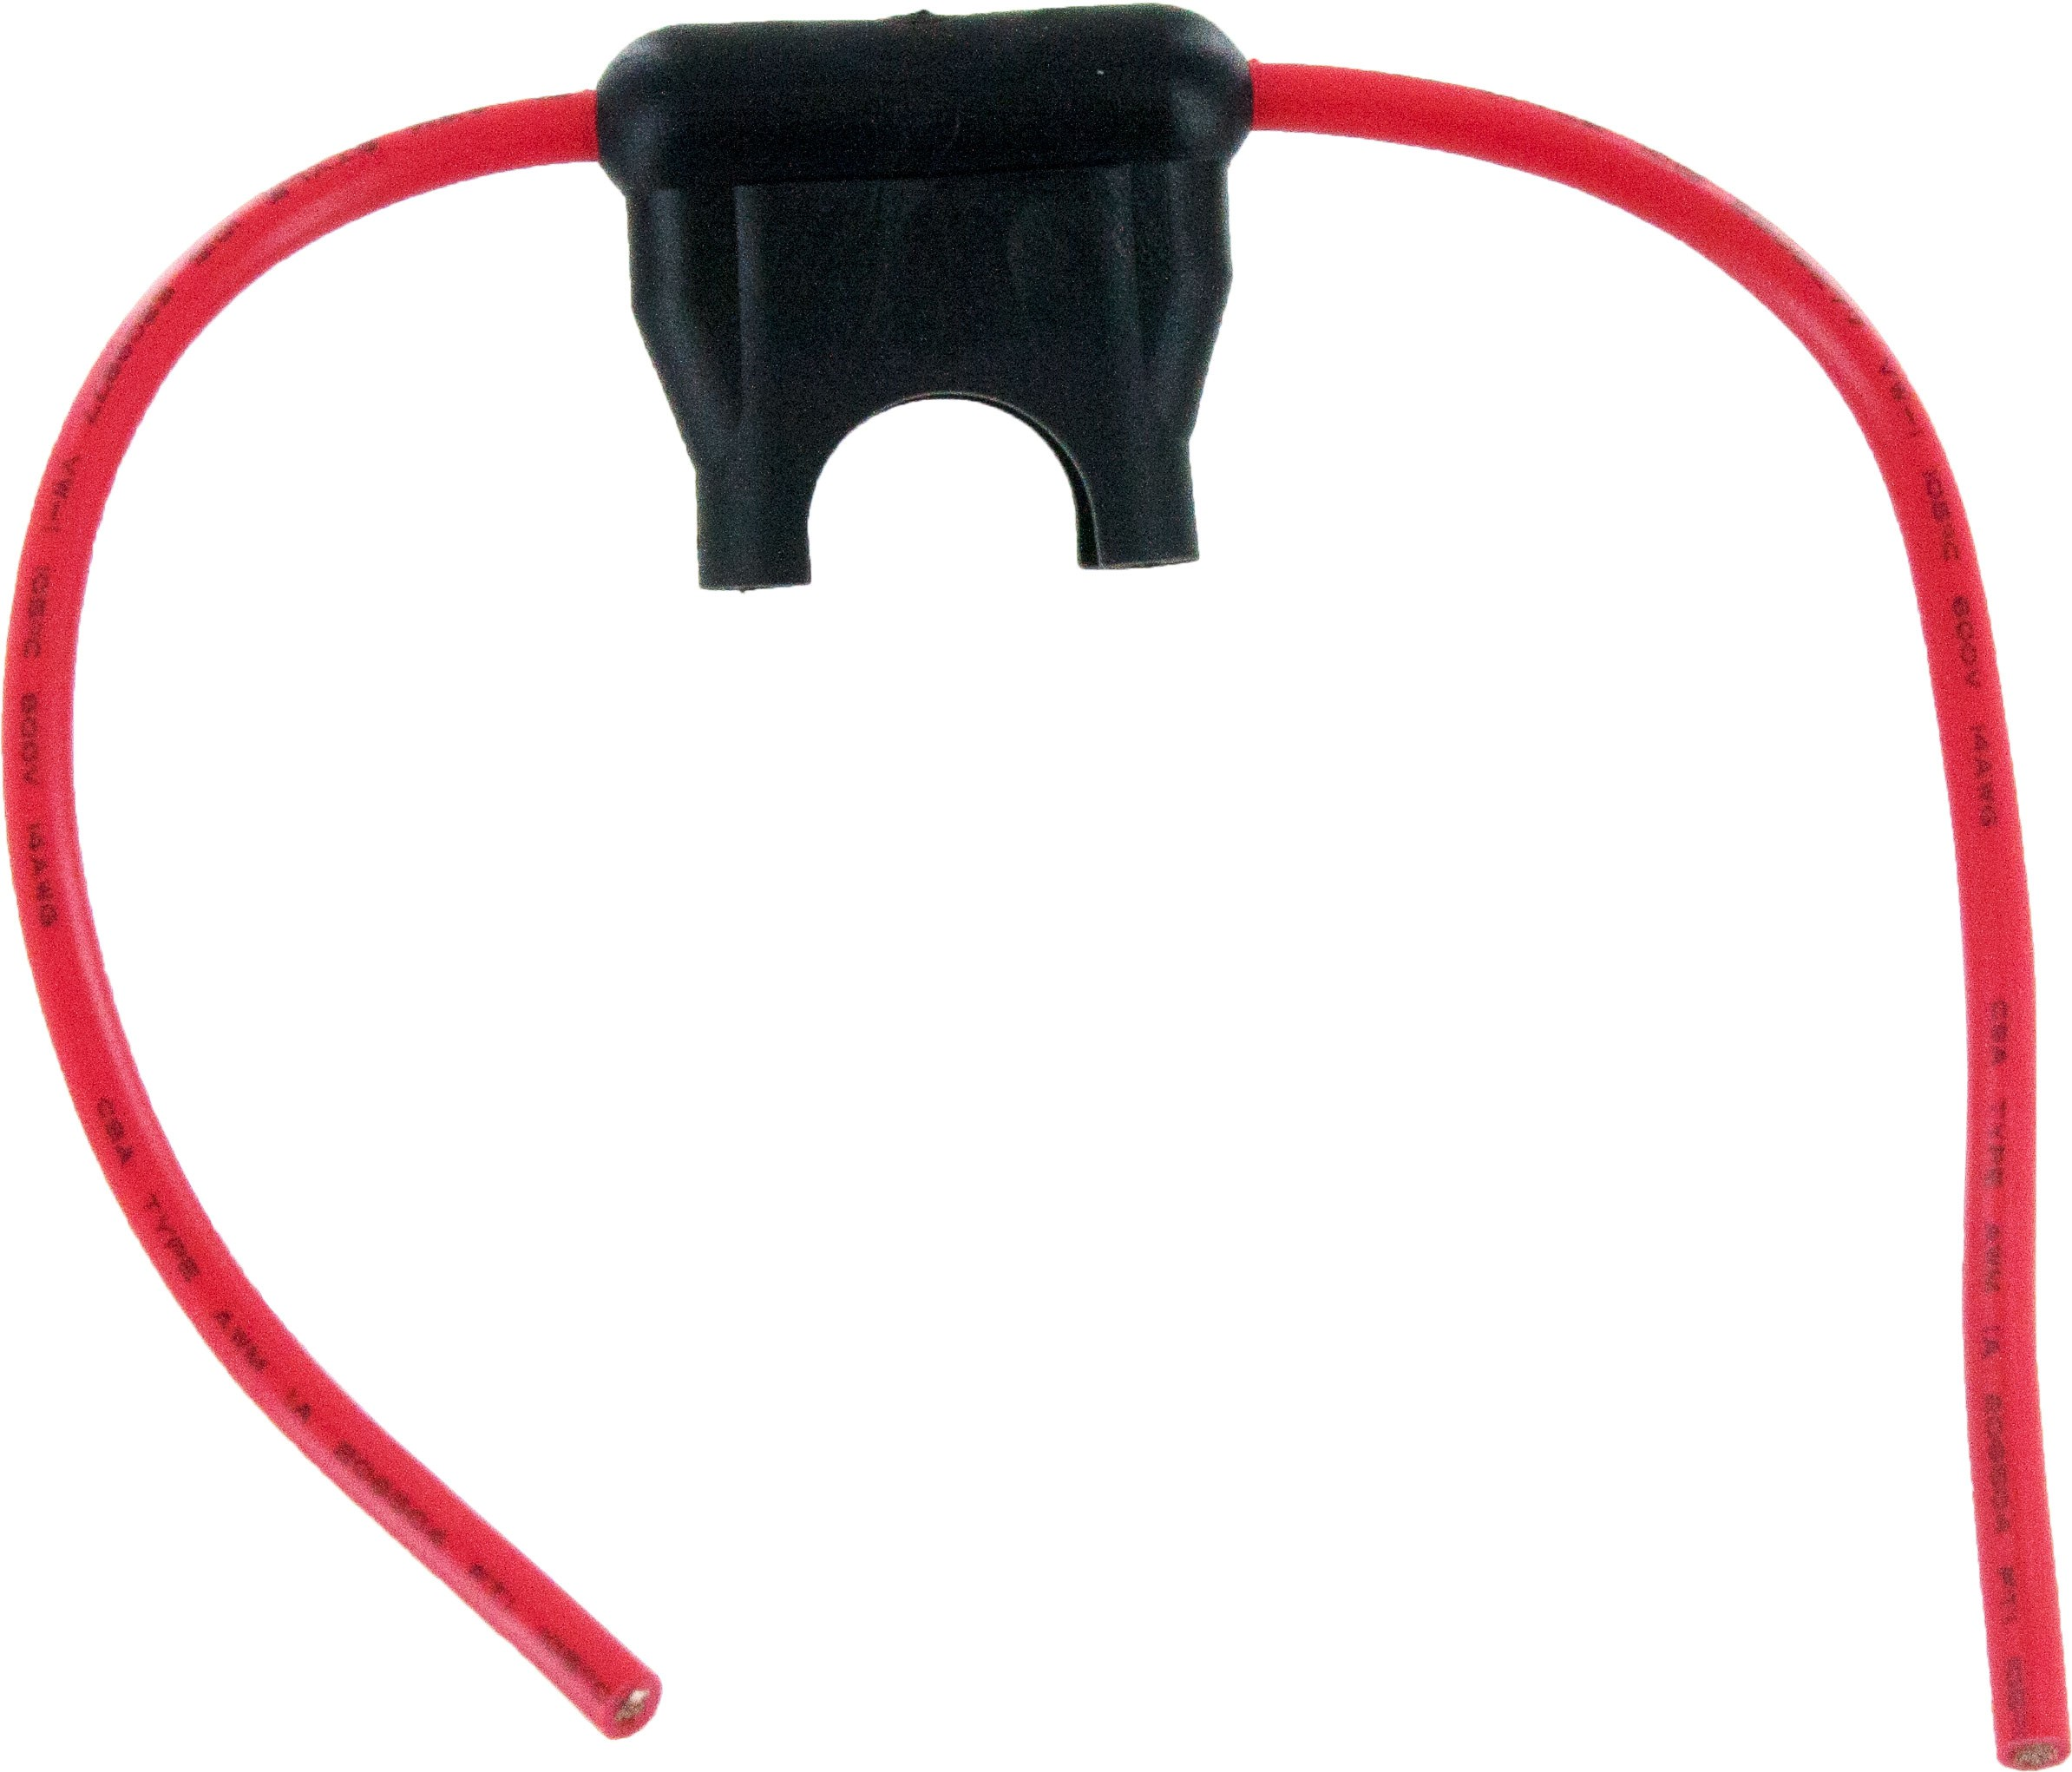 "In-Line Standard Blade Fuse Holder 14 Awg 4.5"" Leads Red"